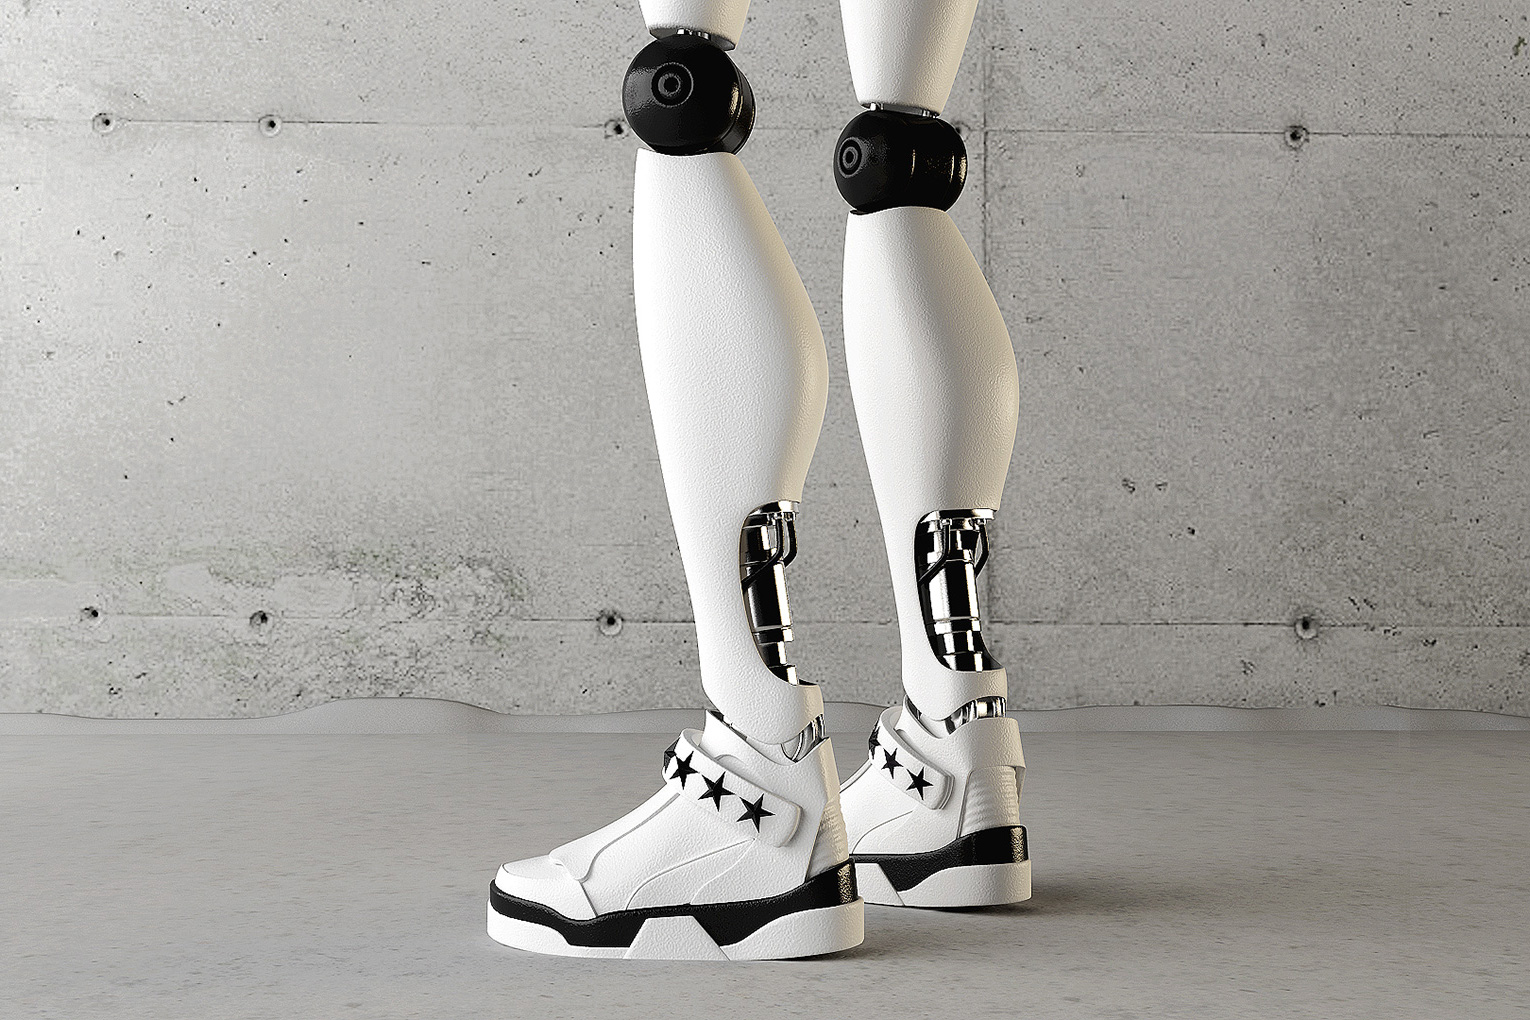 givenchy robotics by simeon georgiev